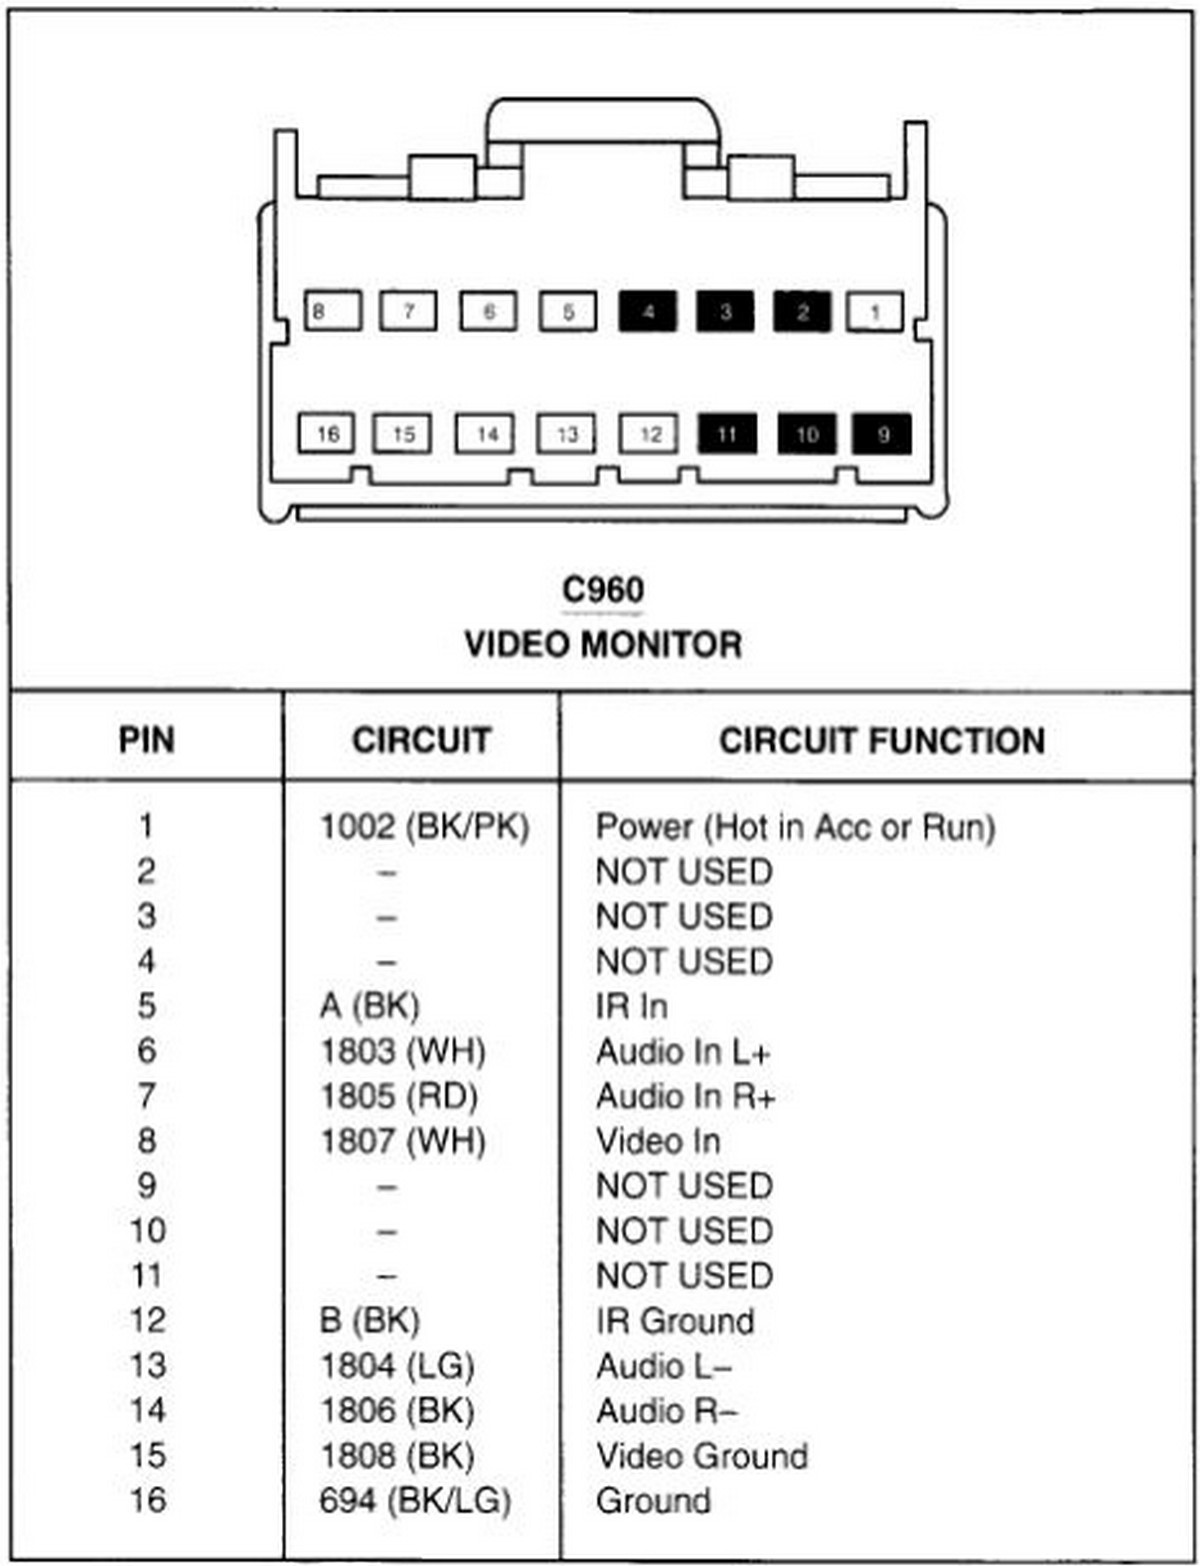 Ford Car Radio Stereo Audio Wiring Diagram Autoradio Connector Wire 2005 Super Duty Diagrams Installation Schematic Schema Esquema De Conexiones Stecker Konektor Connecteur Cable